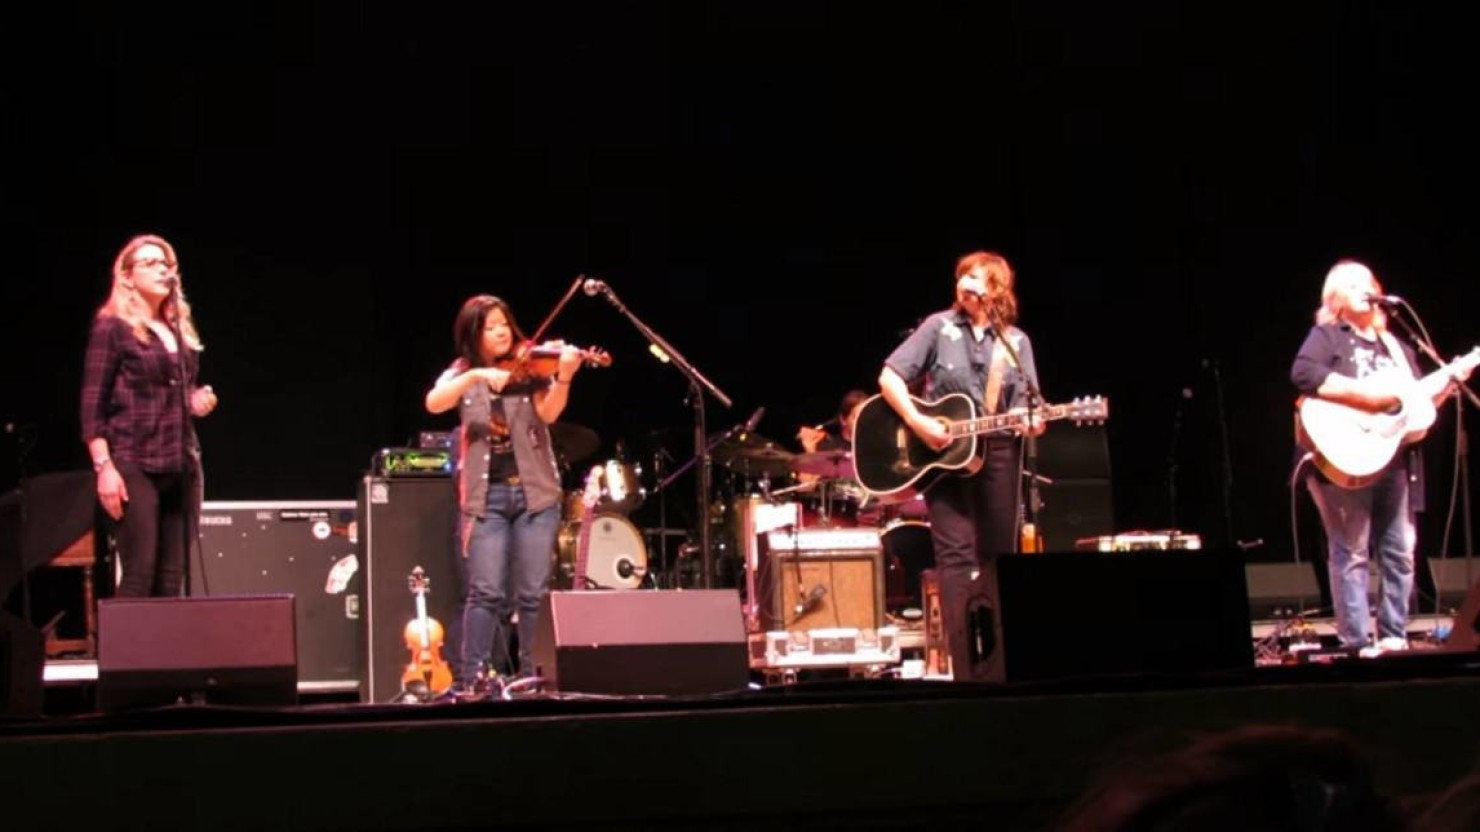 susan tedeschi guests with indigo girls on 39 closer to fine 39. Black Bedroom Furniture Sets. Home Design Ideas